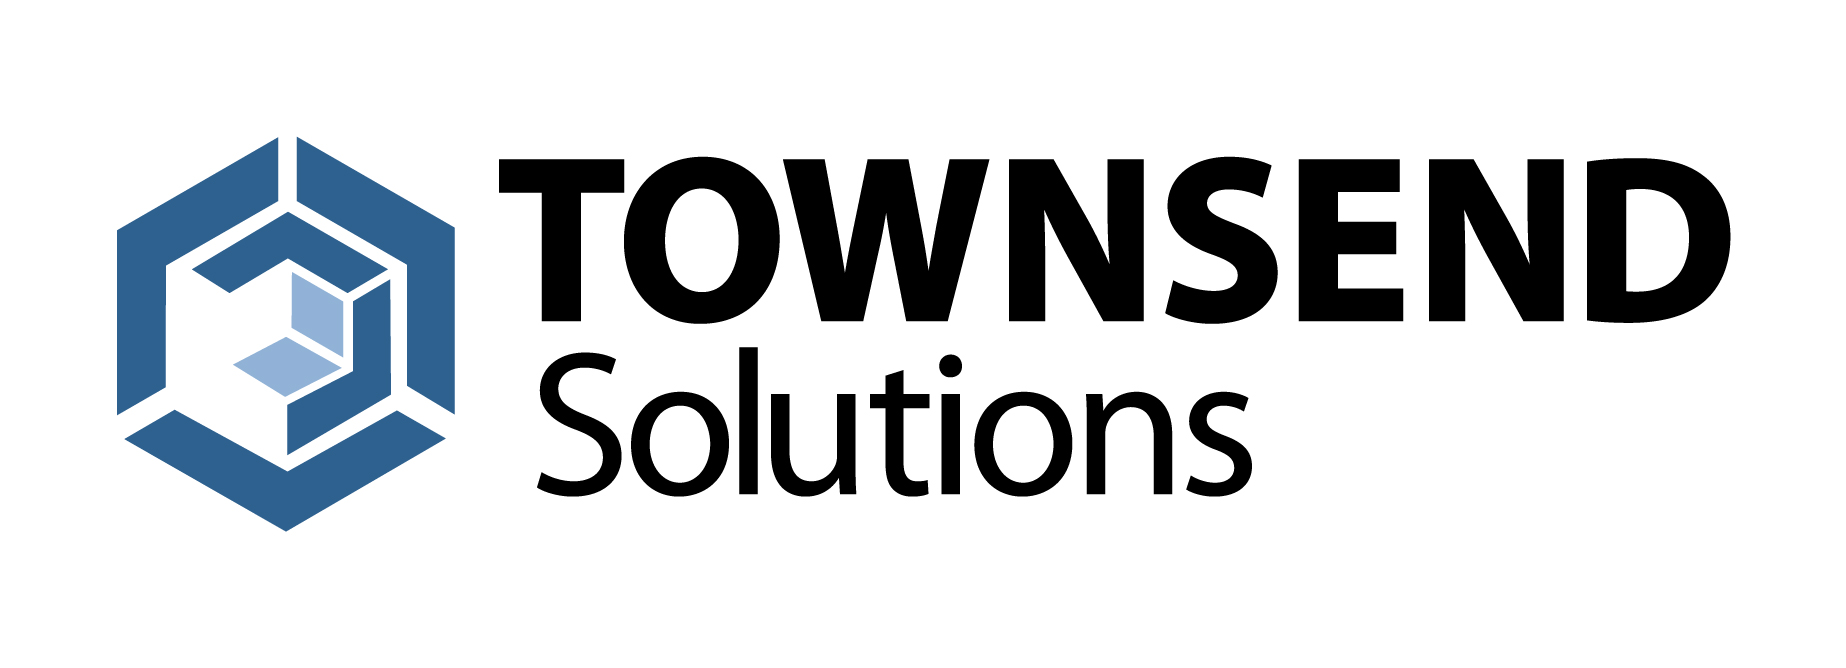 Townsend Solutions